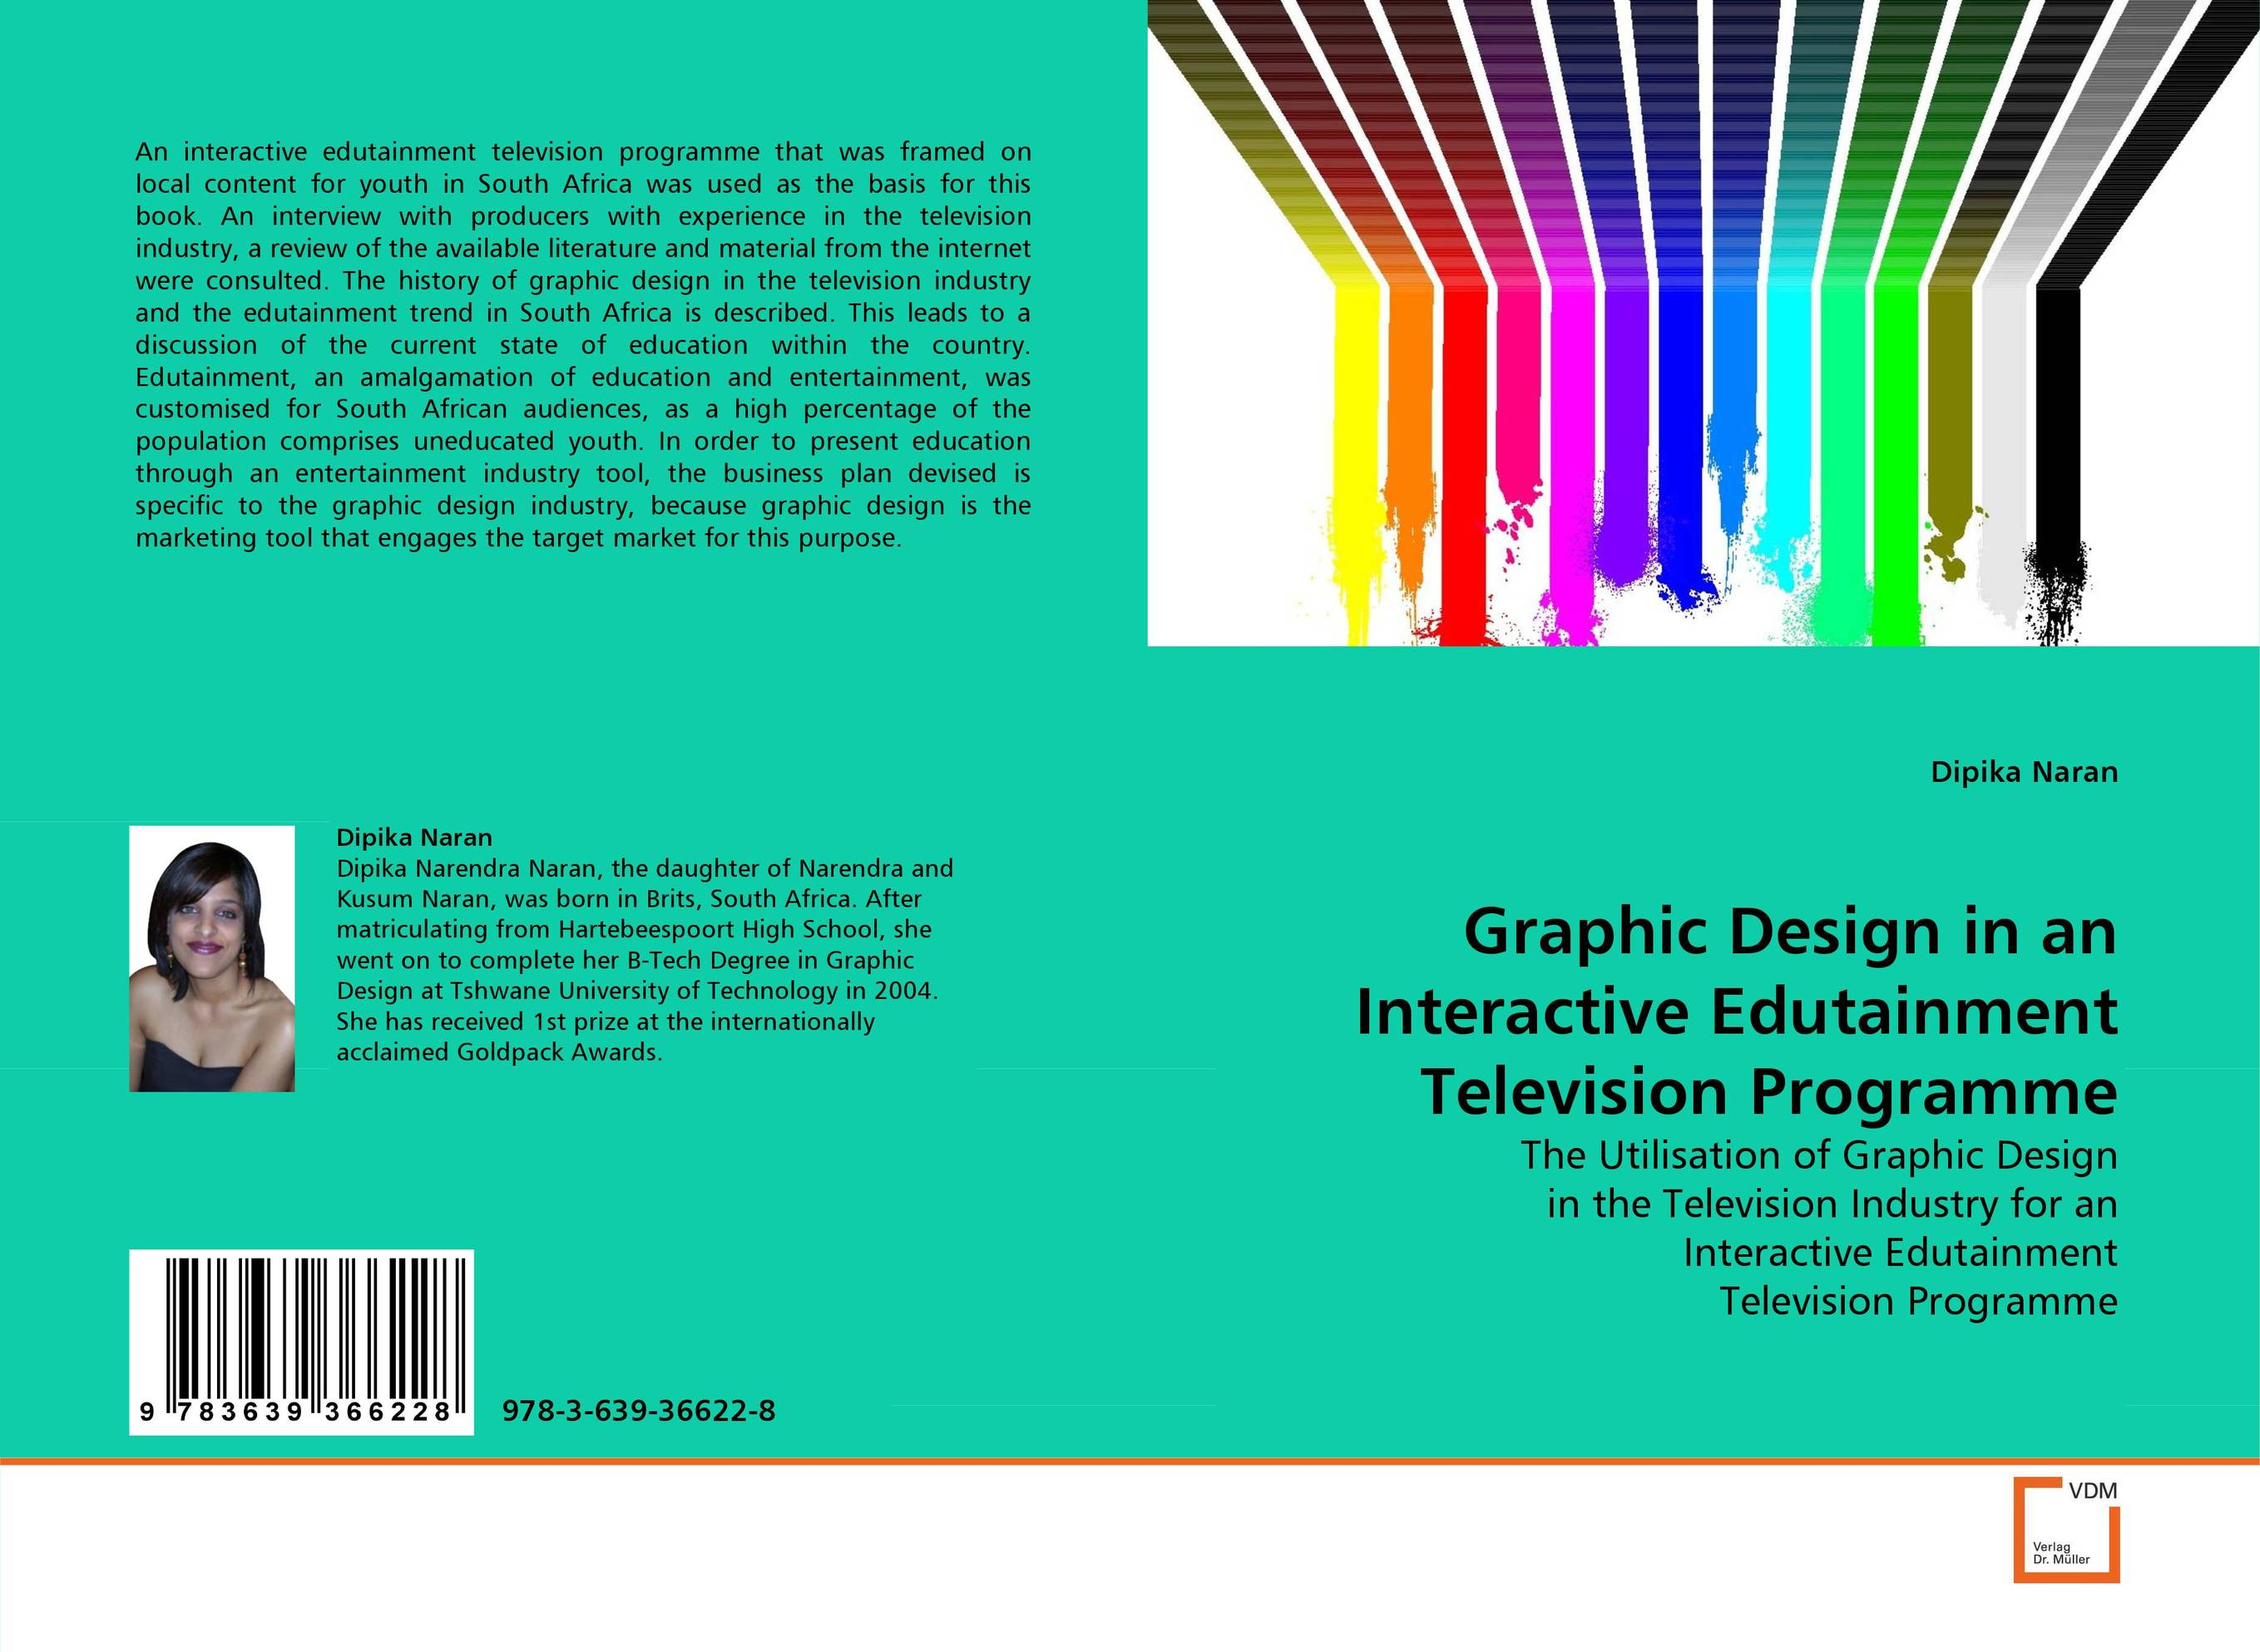 Graphic Design in an Interactive Edutainment Television Programme affair of state an